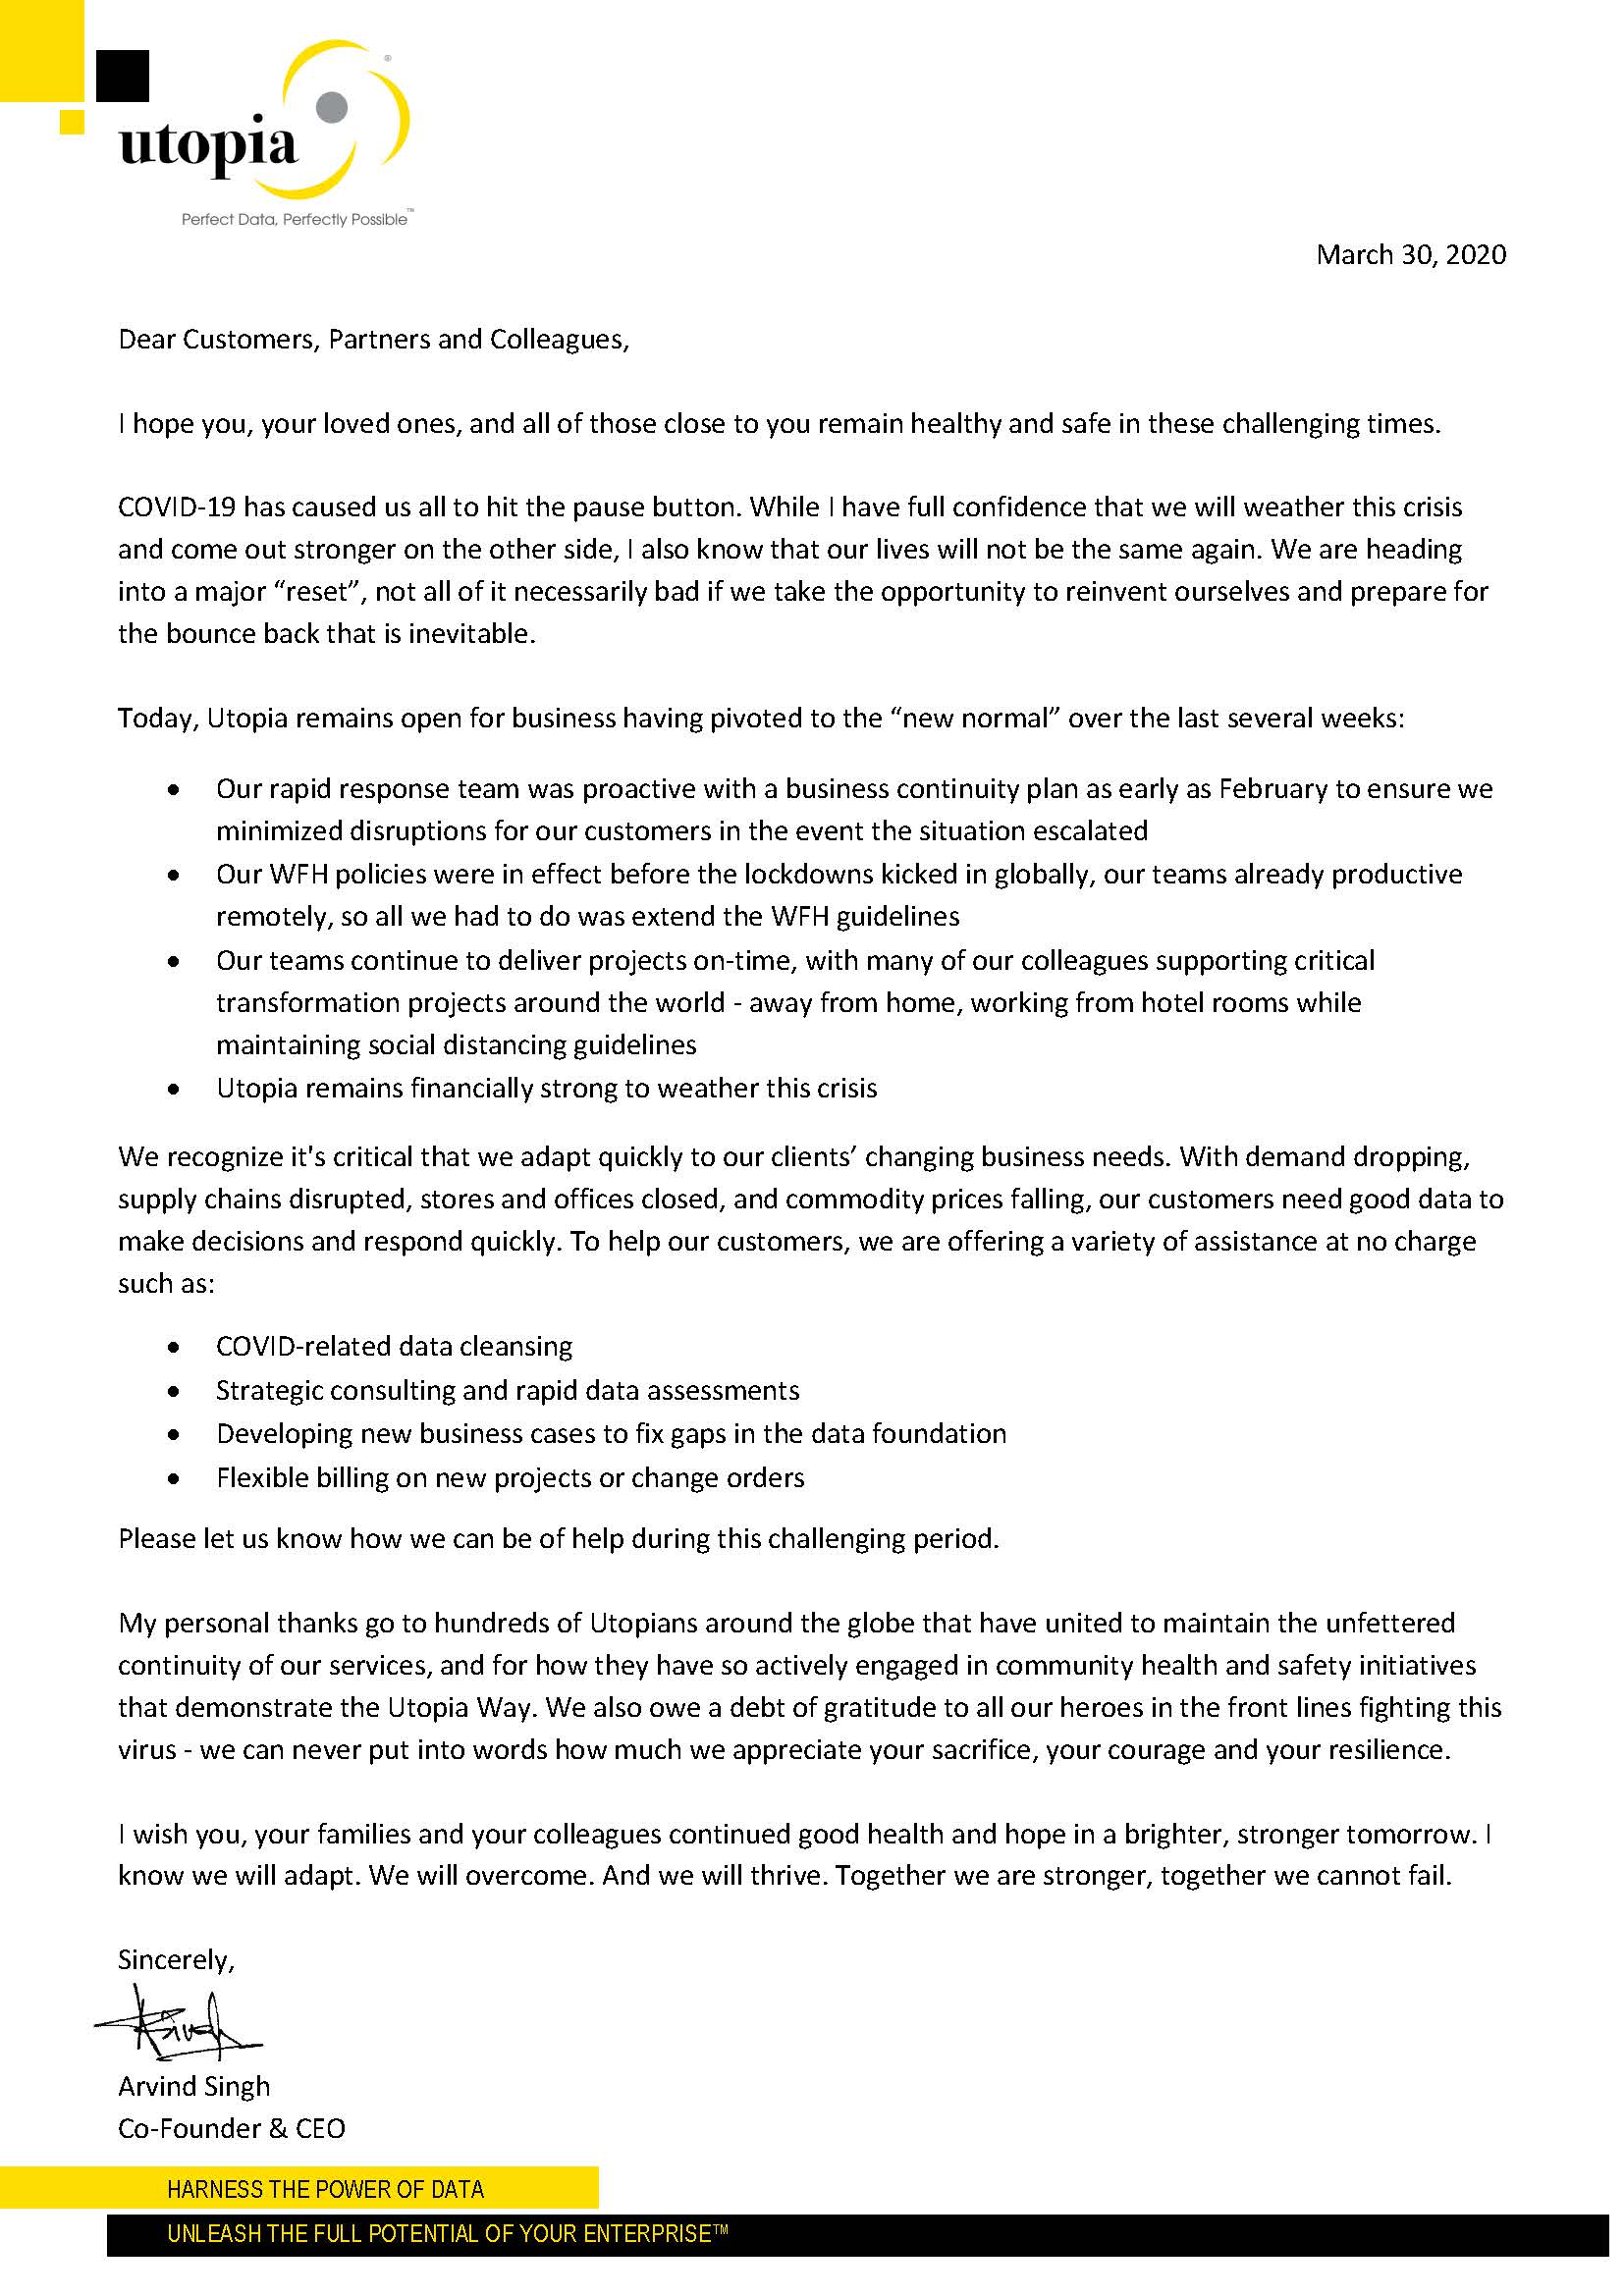 Letter from Utopia CEO (Mar 30, 2020)